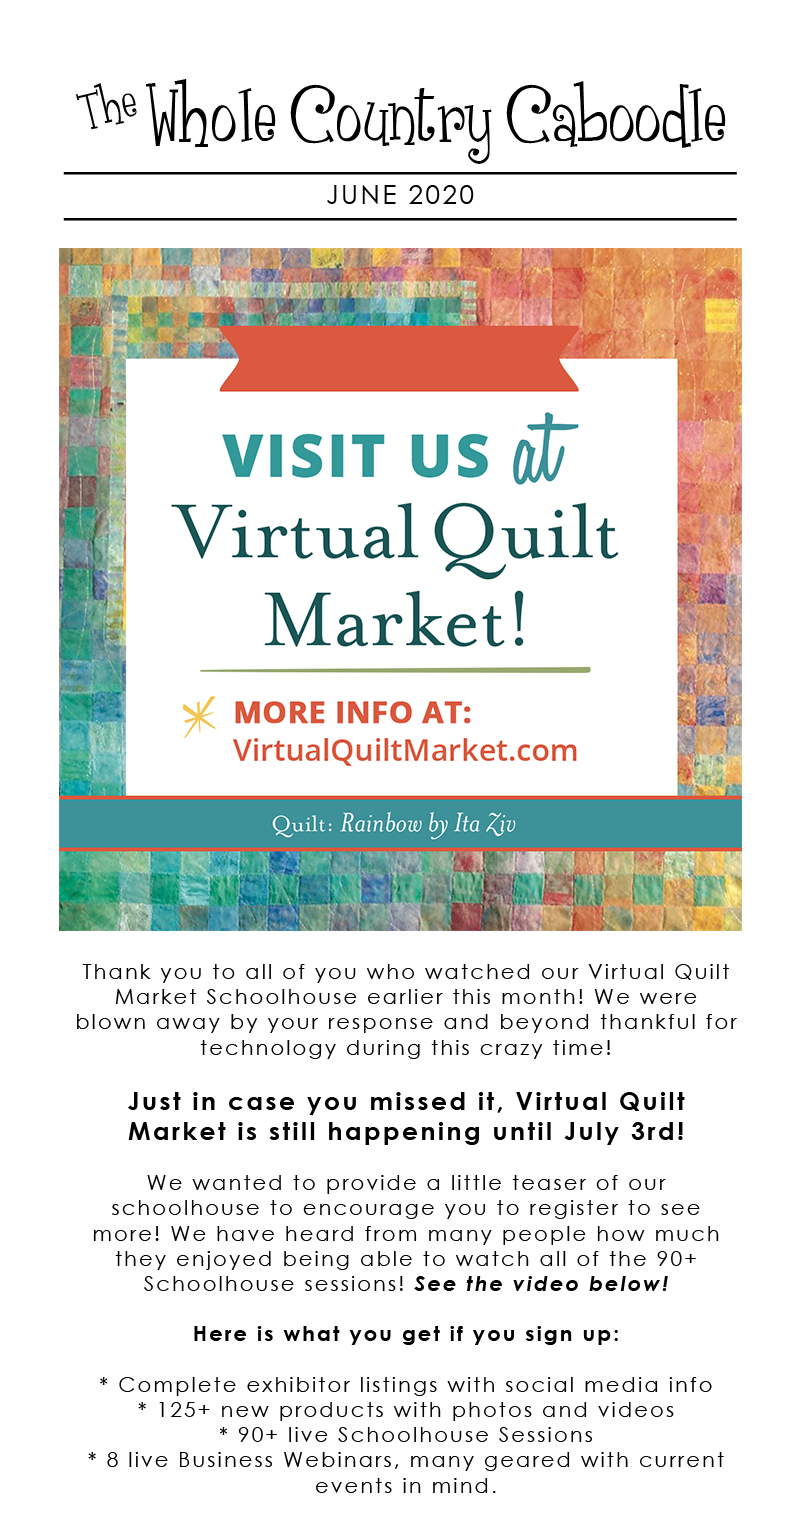 Thank you to all of you who watched our Virtual Quilt Market Schoolhouse earlier this month! We were blown away by your response and beyond thankful for technology during this crazy time! Just in case you missed it, Virtual Quilt Market is still happening until July 3rd!